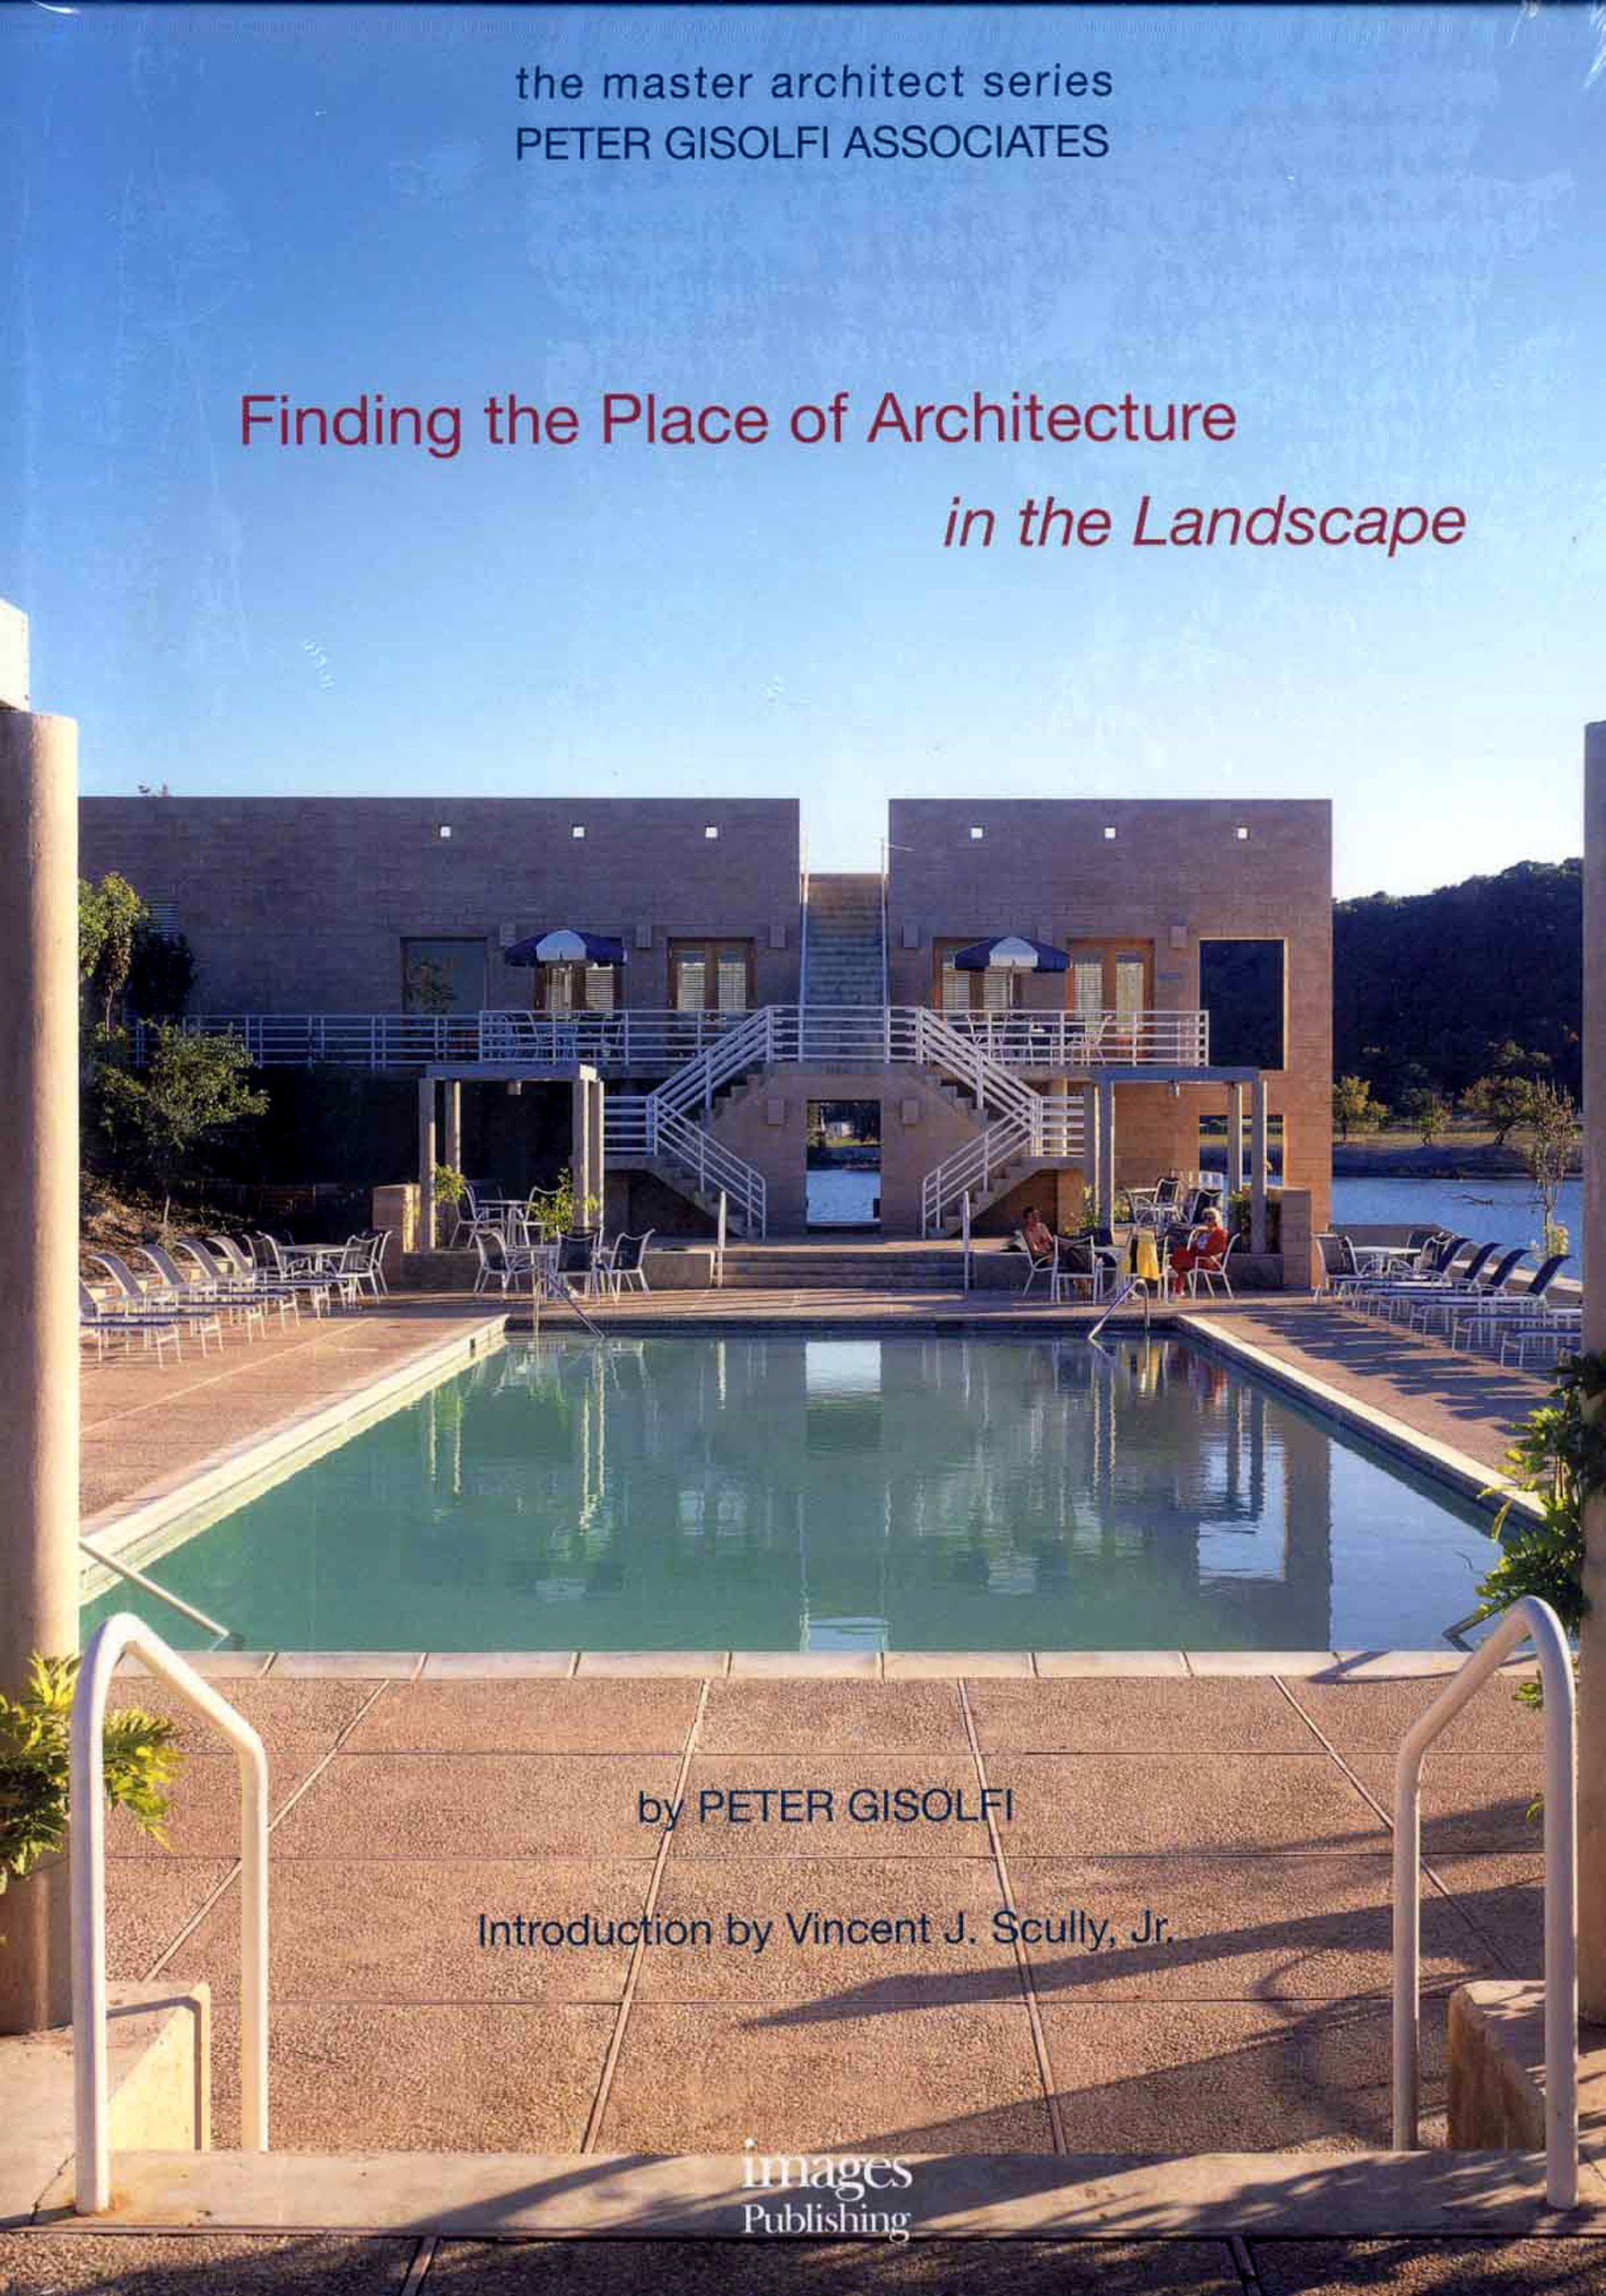 Peter Gisolfi Associates: Finding the Place of Architecture in the Landscape (The Master Architect) ebook